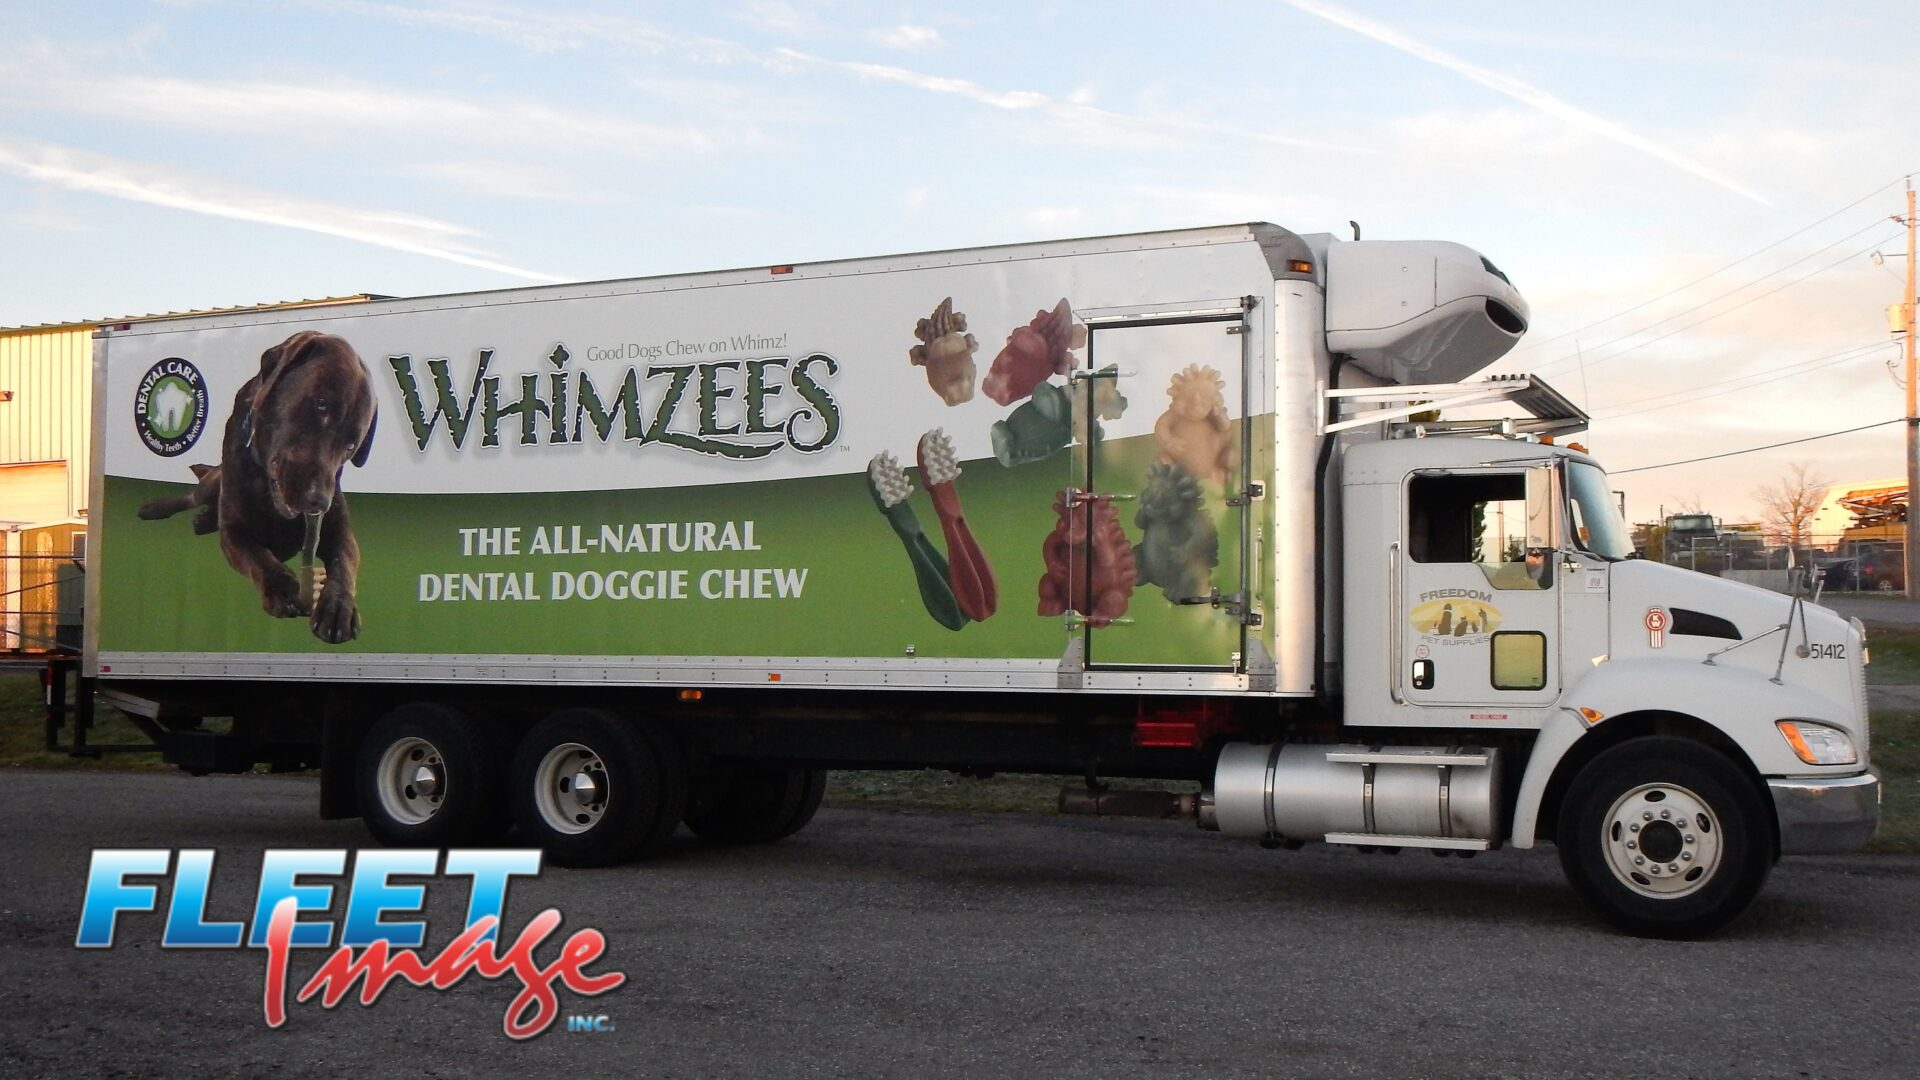 WHIMZEES decal sticker on a truck